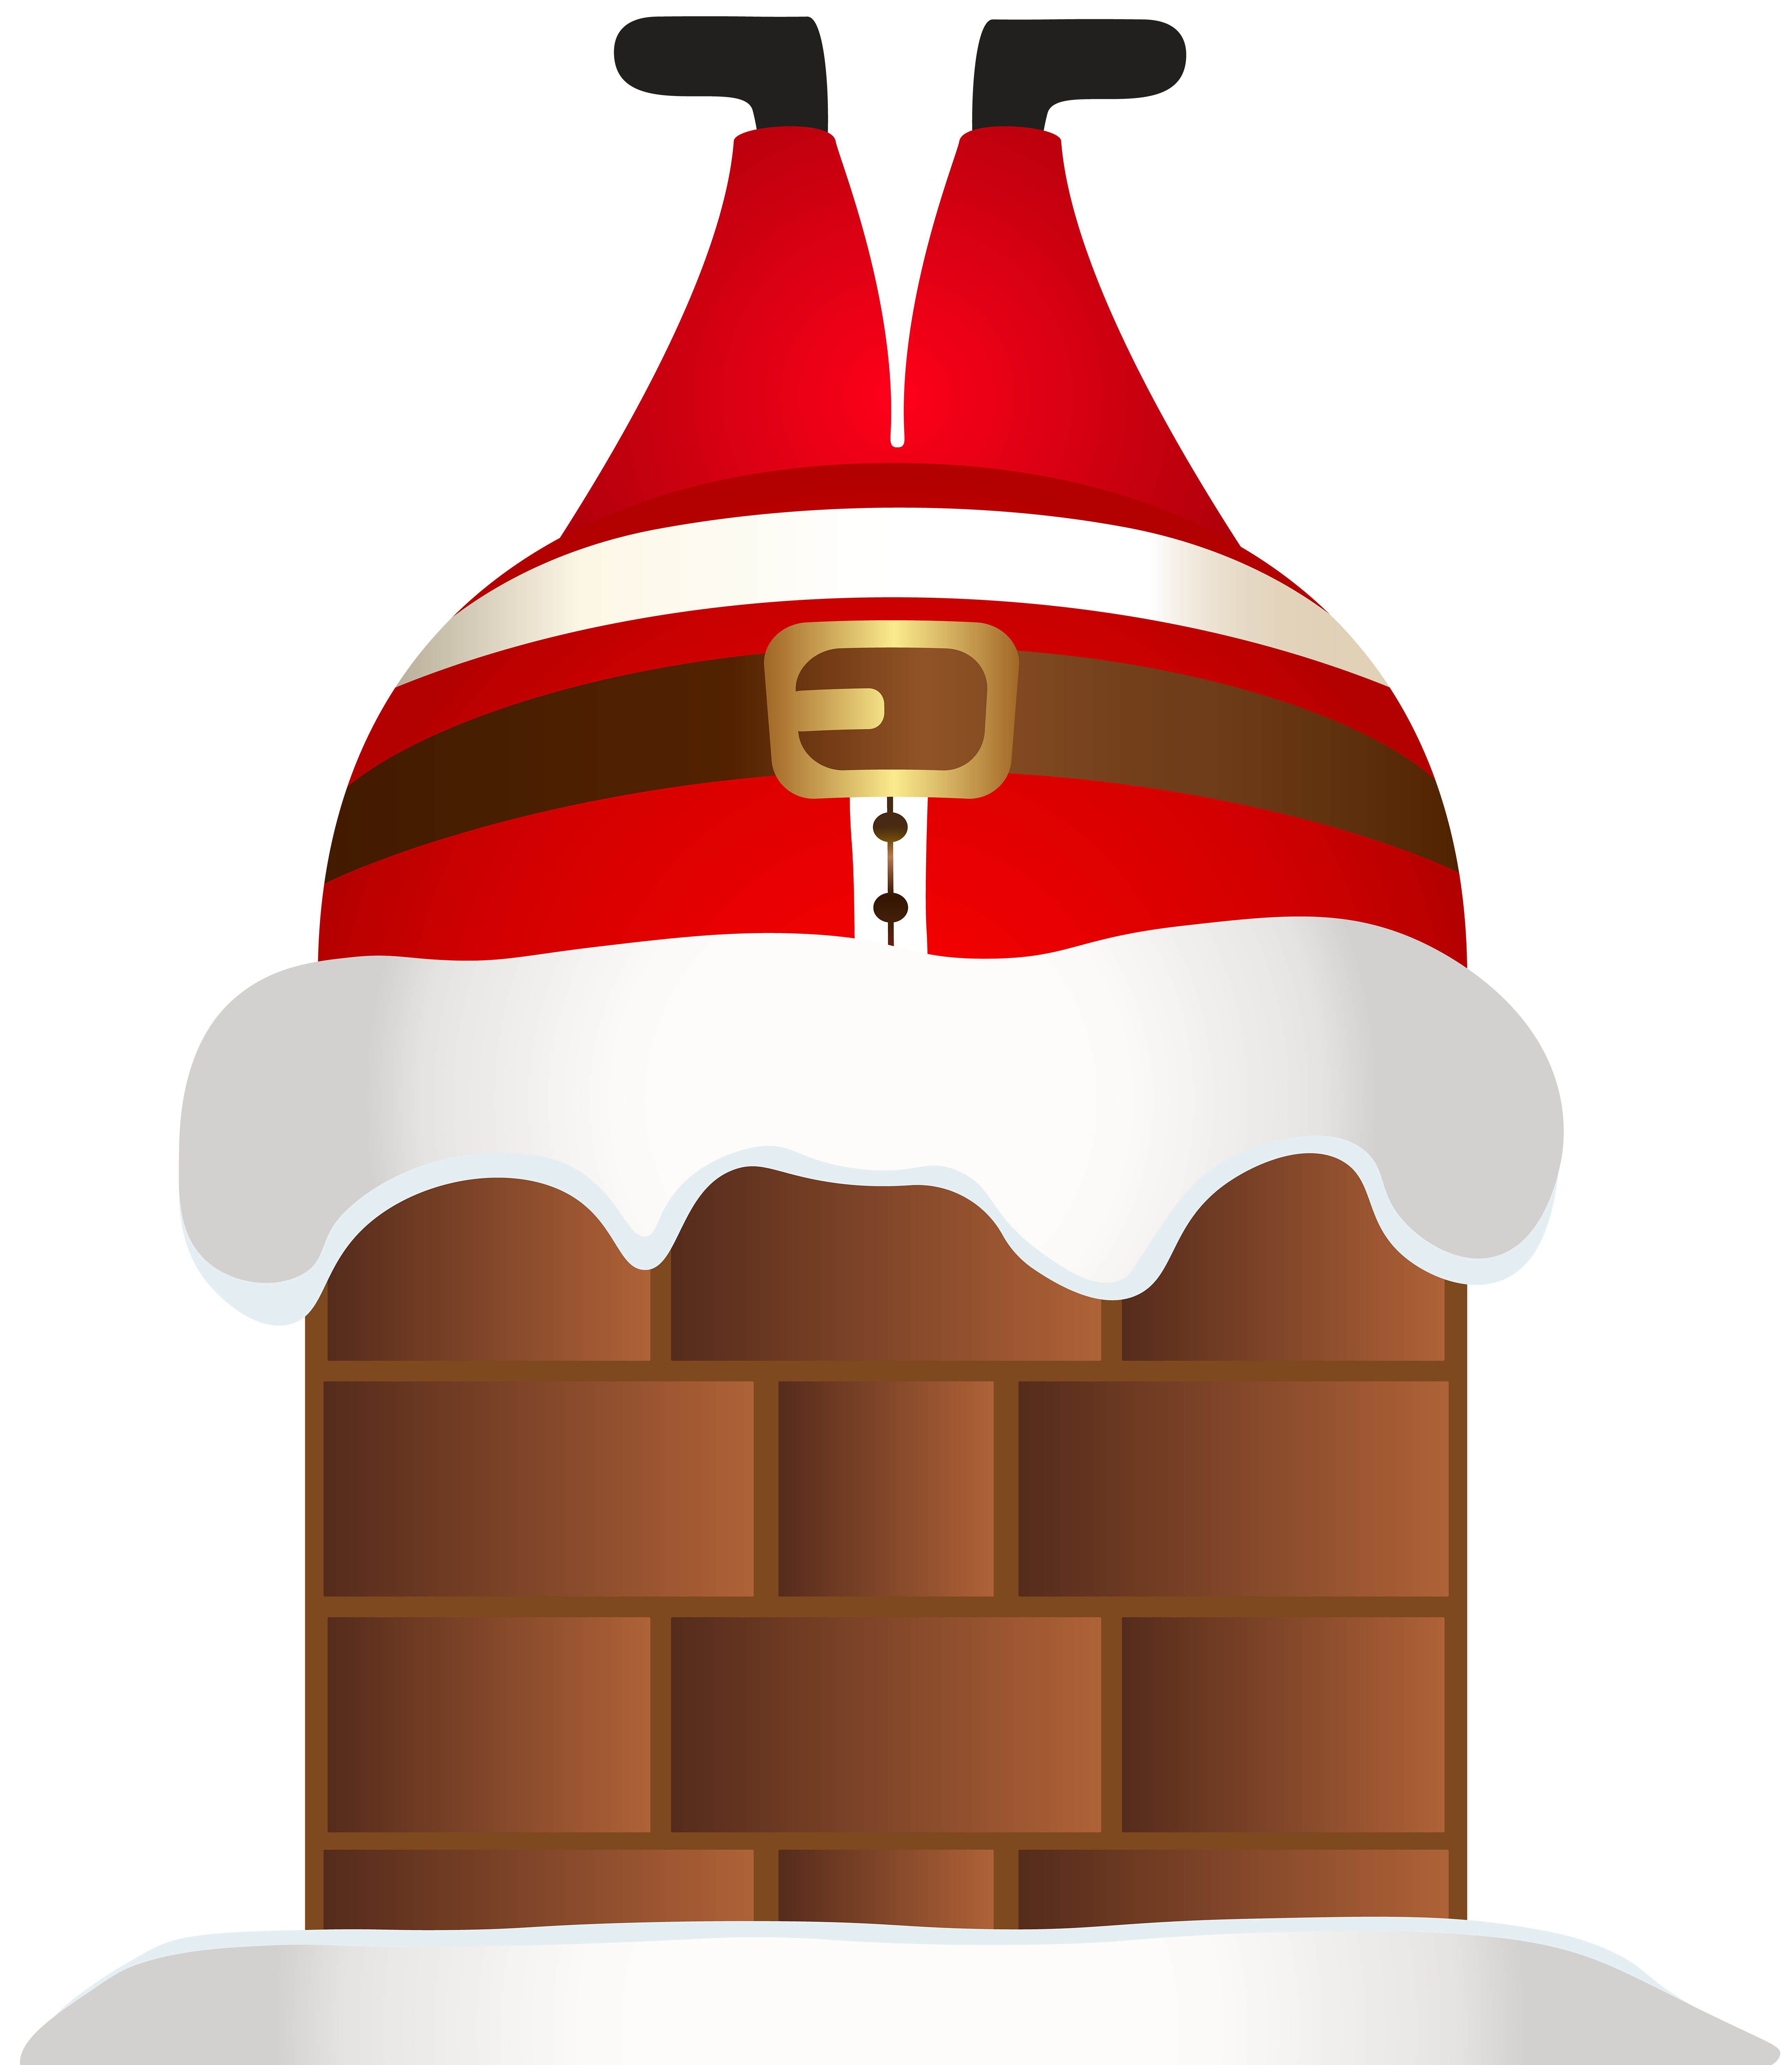 Clip art images gallery. Chimney clipart background